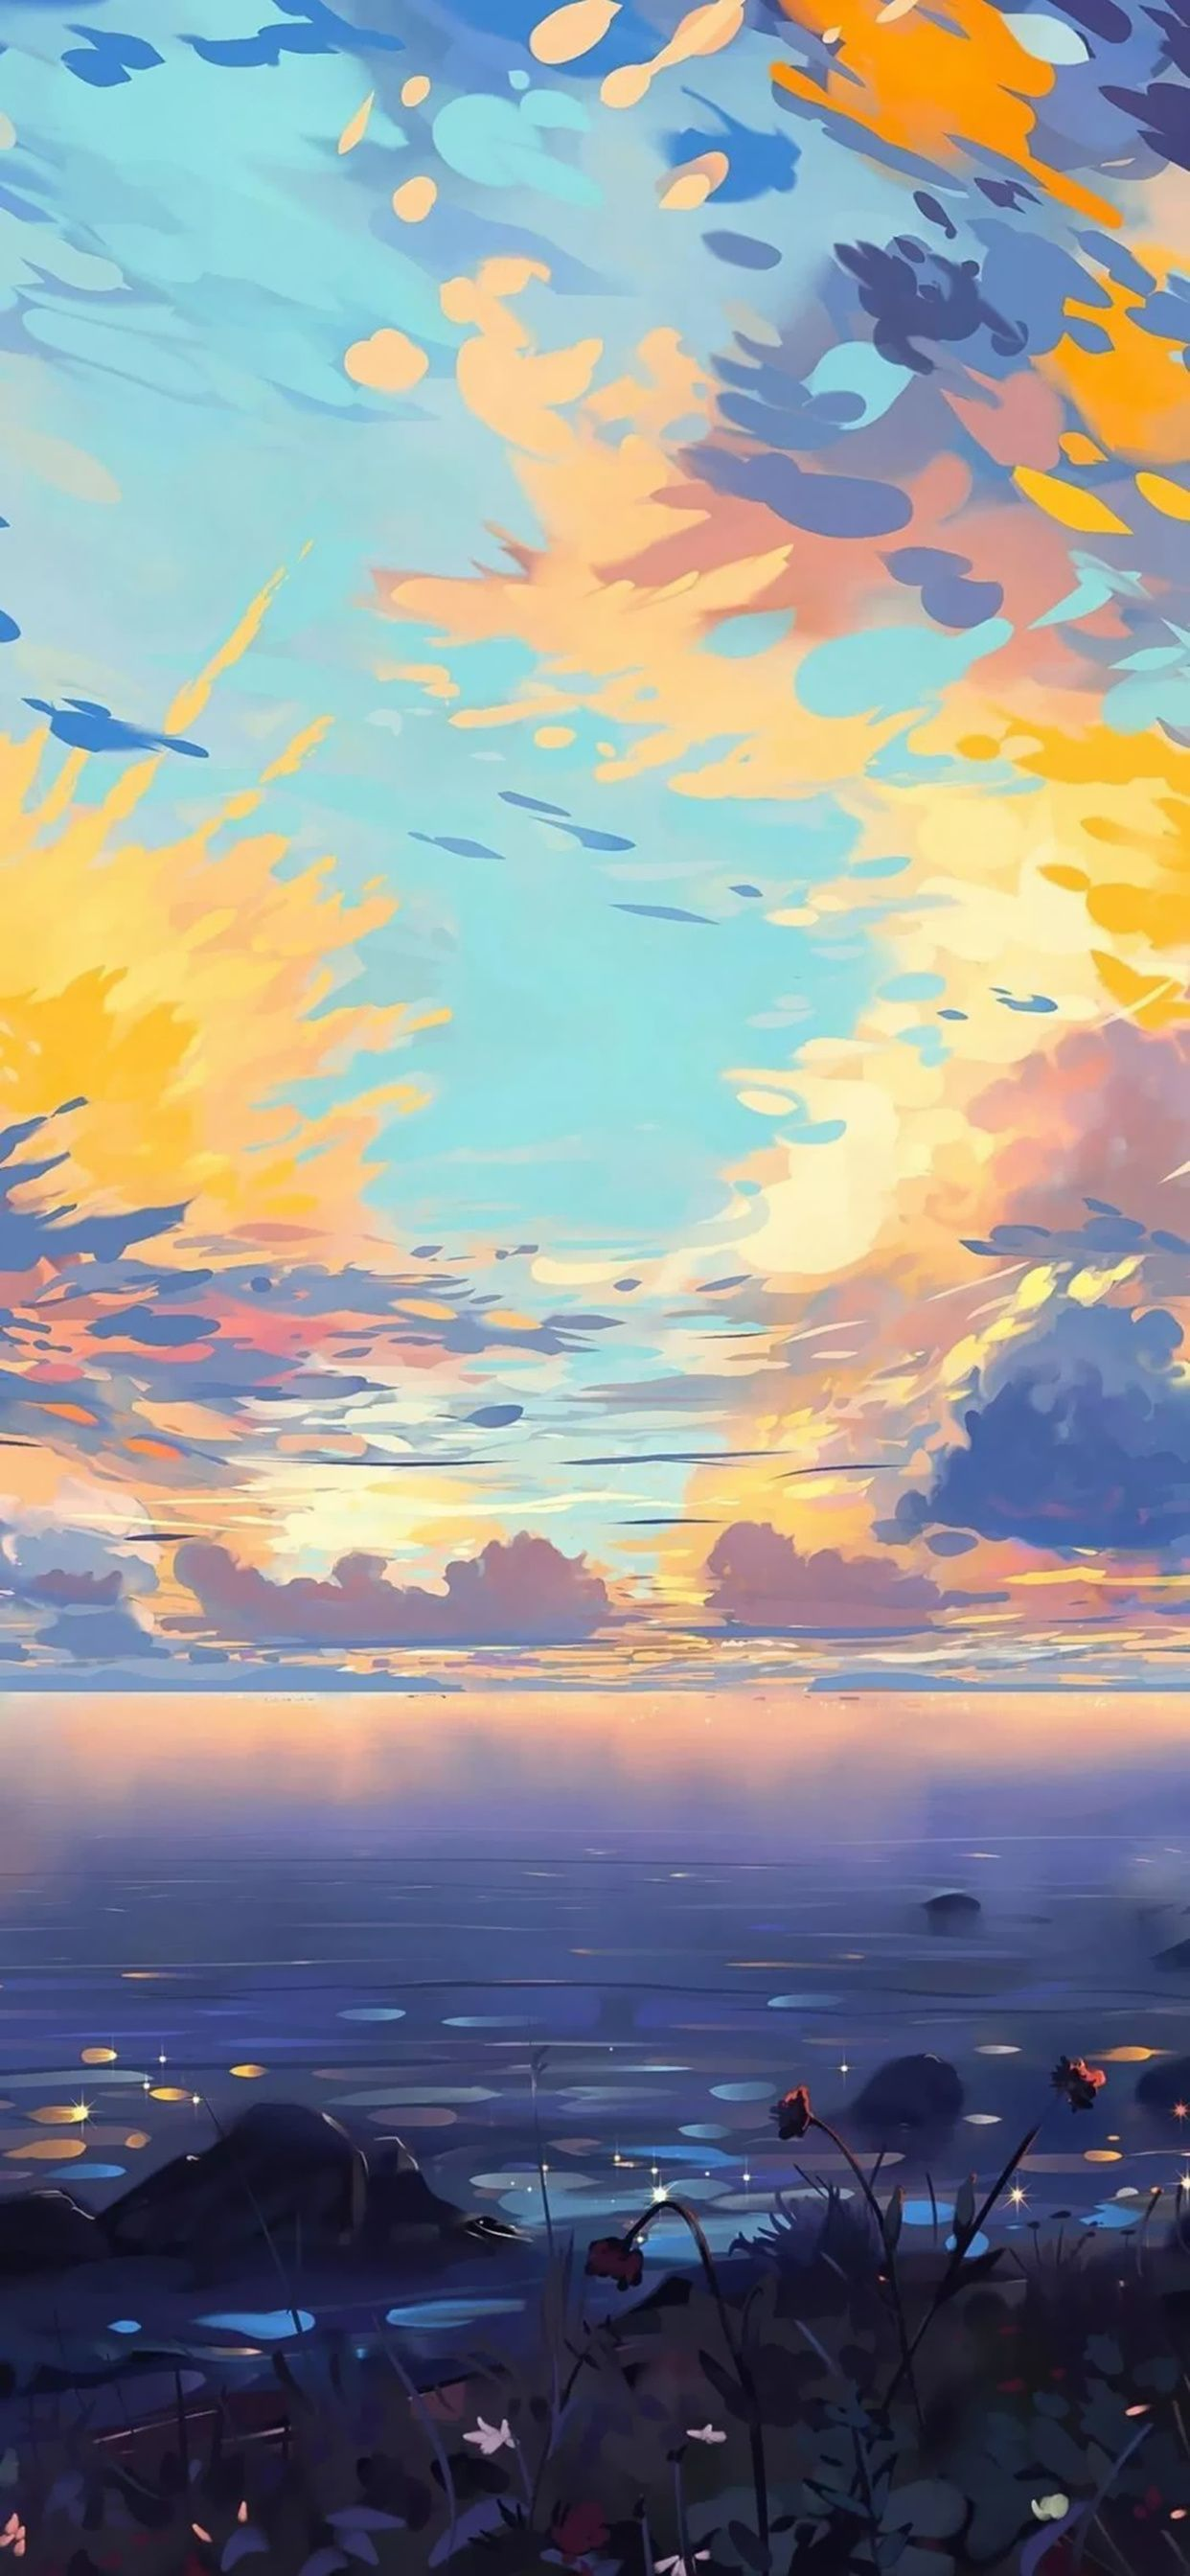 Colorful Shiny Sky Anime Scenery Wallpaper Scenery Wallpaper Landscape Wallpaper Cute colorful anime wallpapers